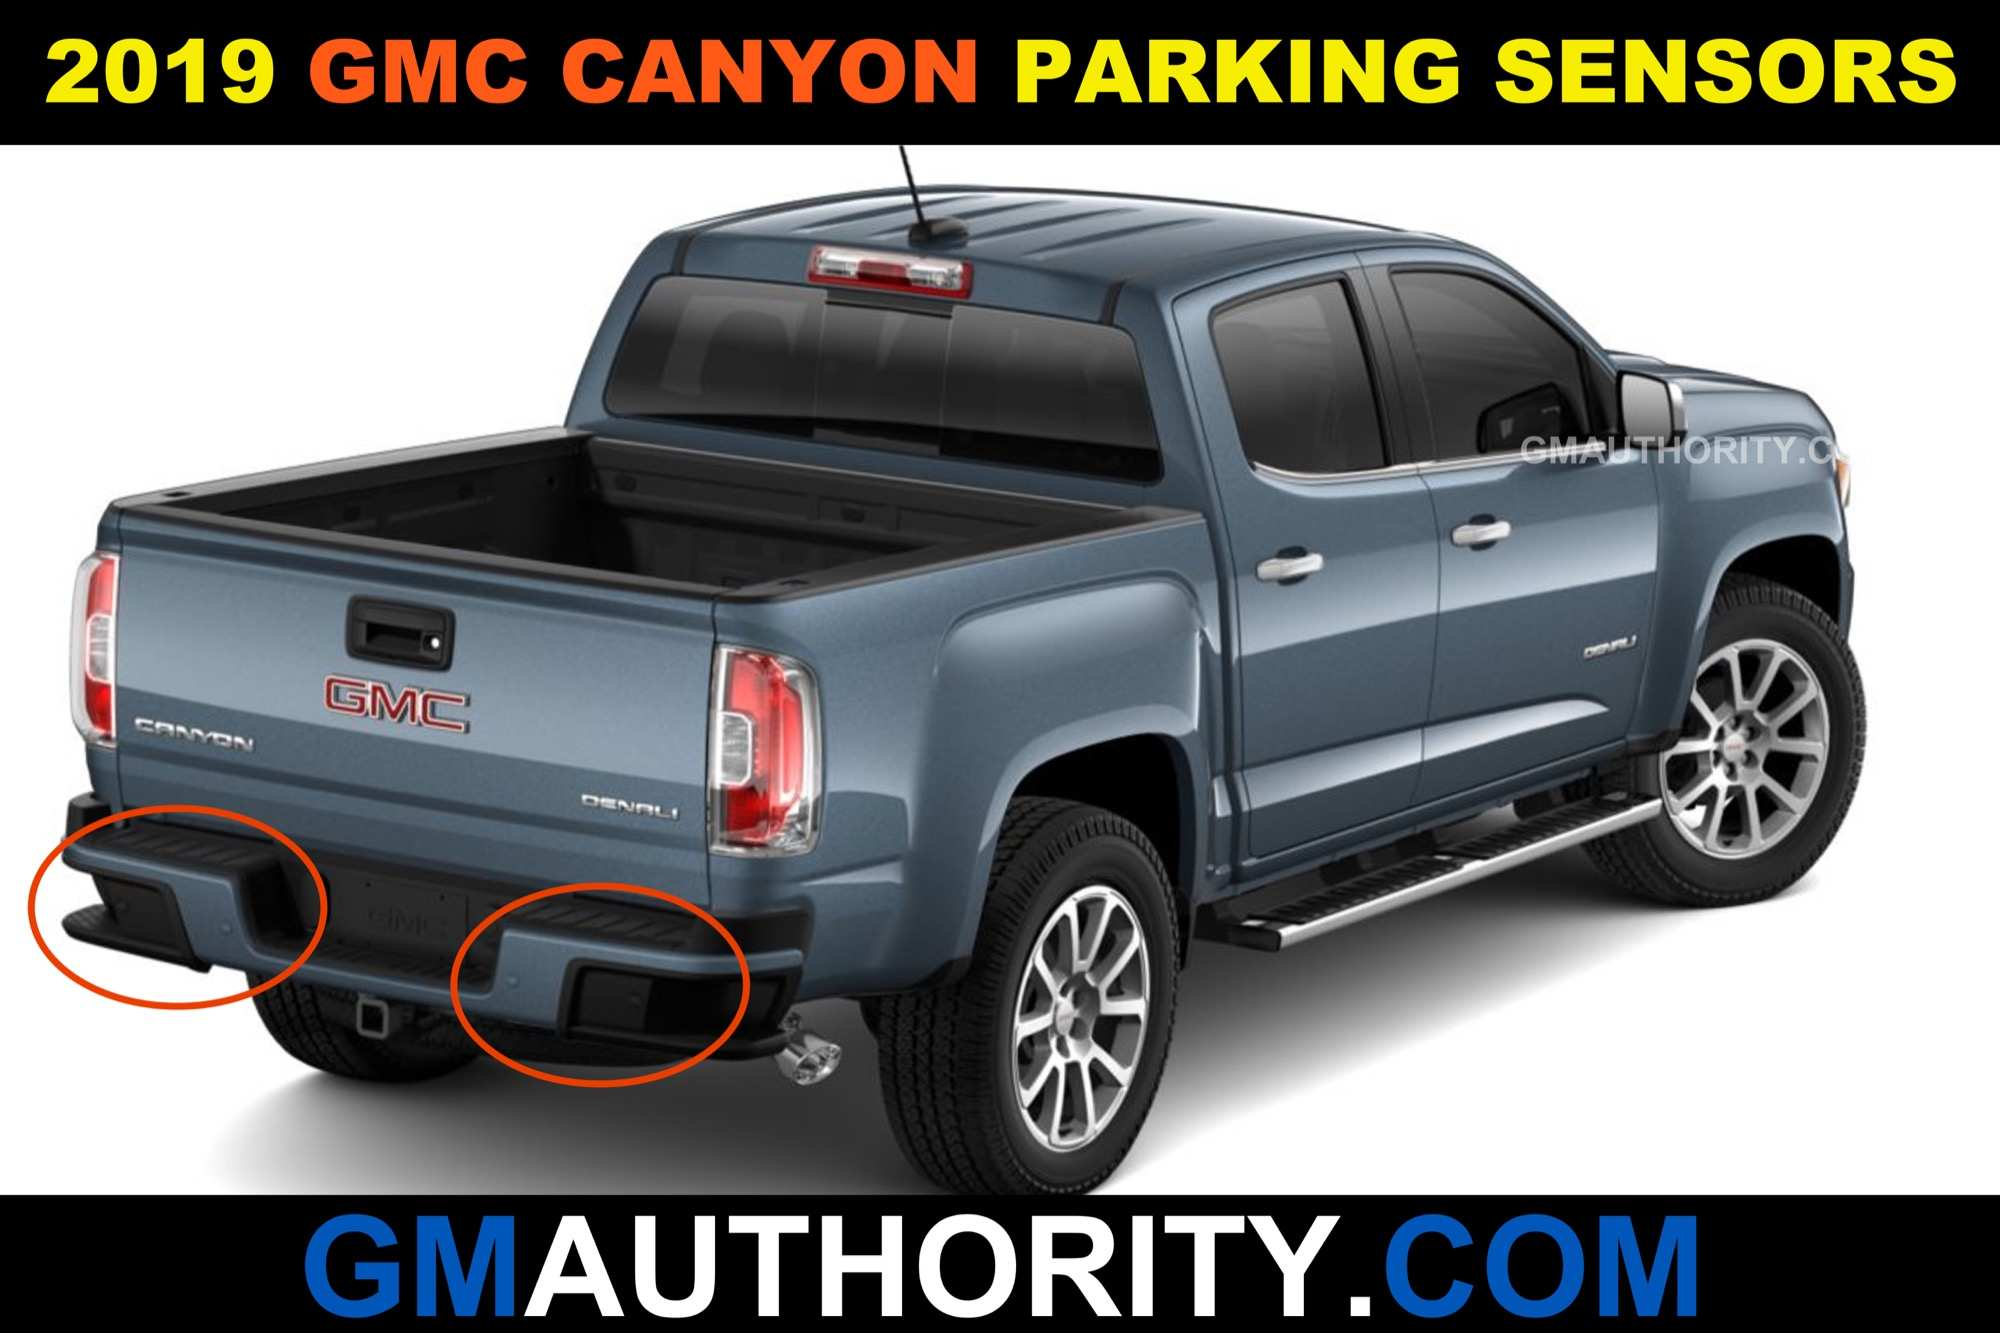 94 All New 2019 GMC Canyon Pictures